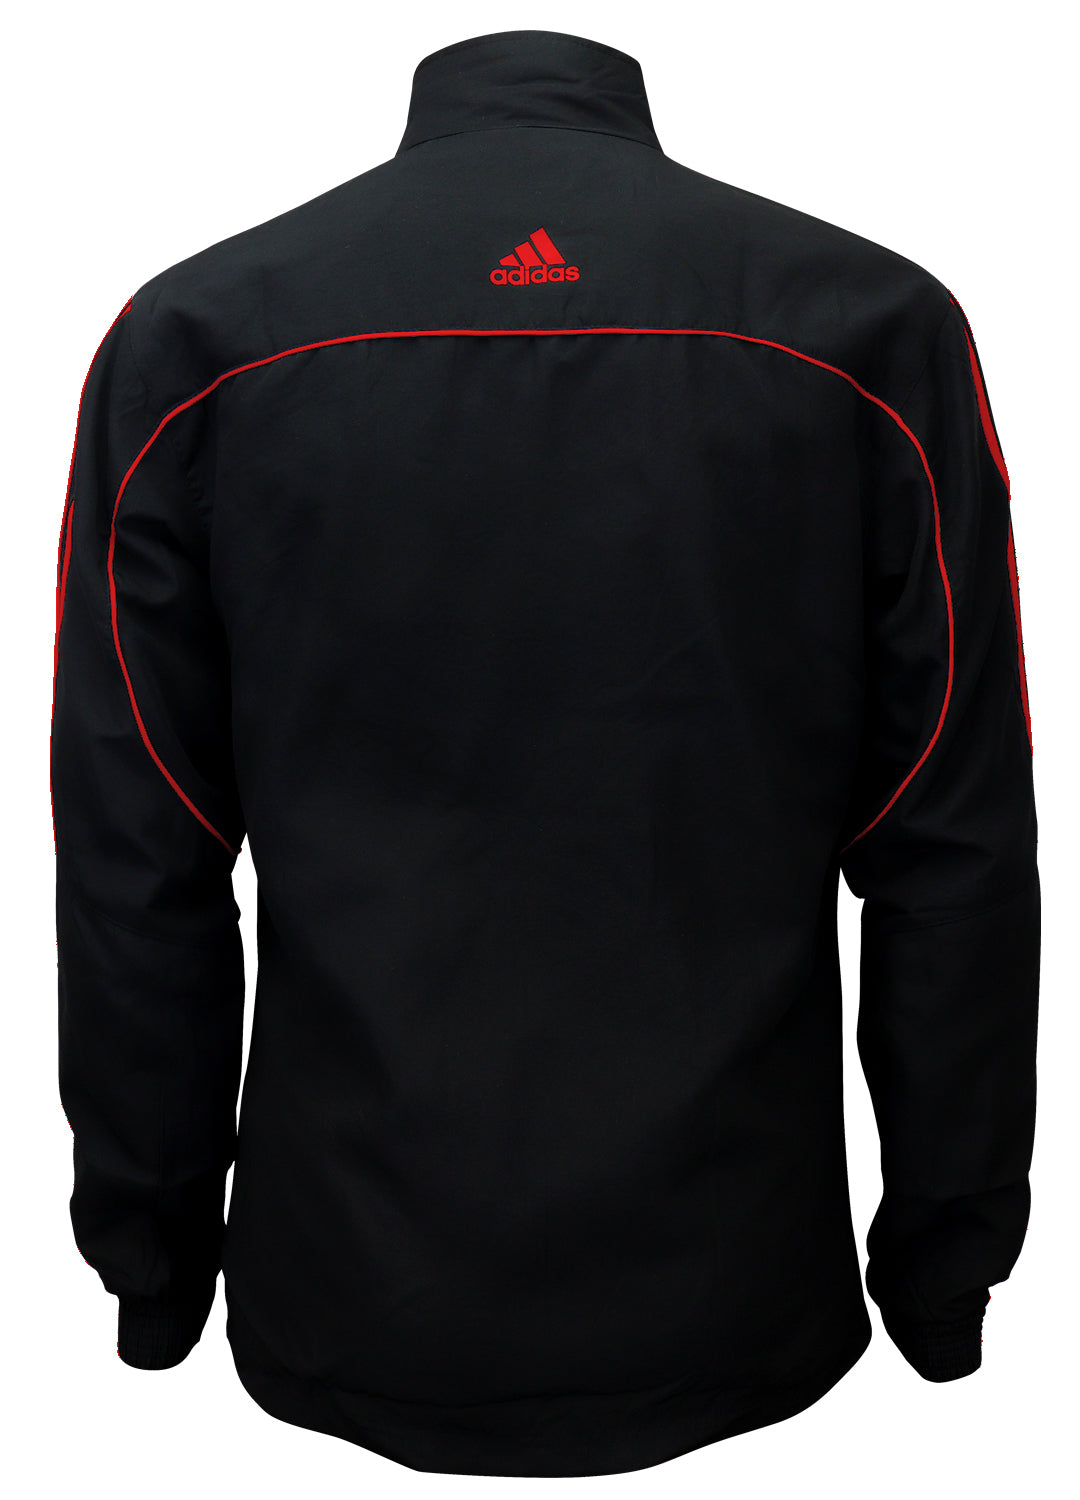 adidas Black with Red Stripes Windbreaker Style Team Jacket Back View